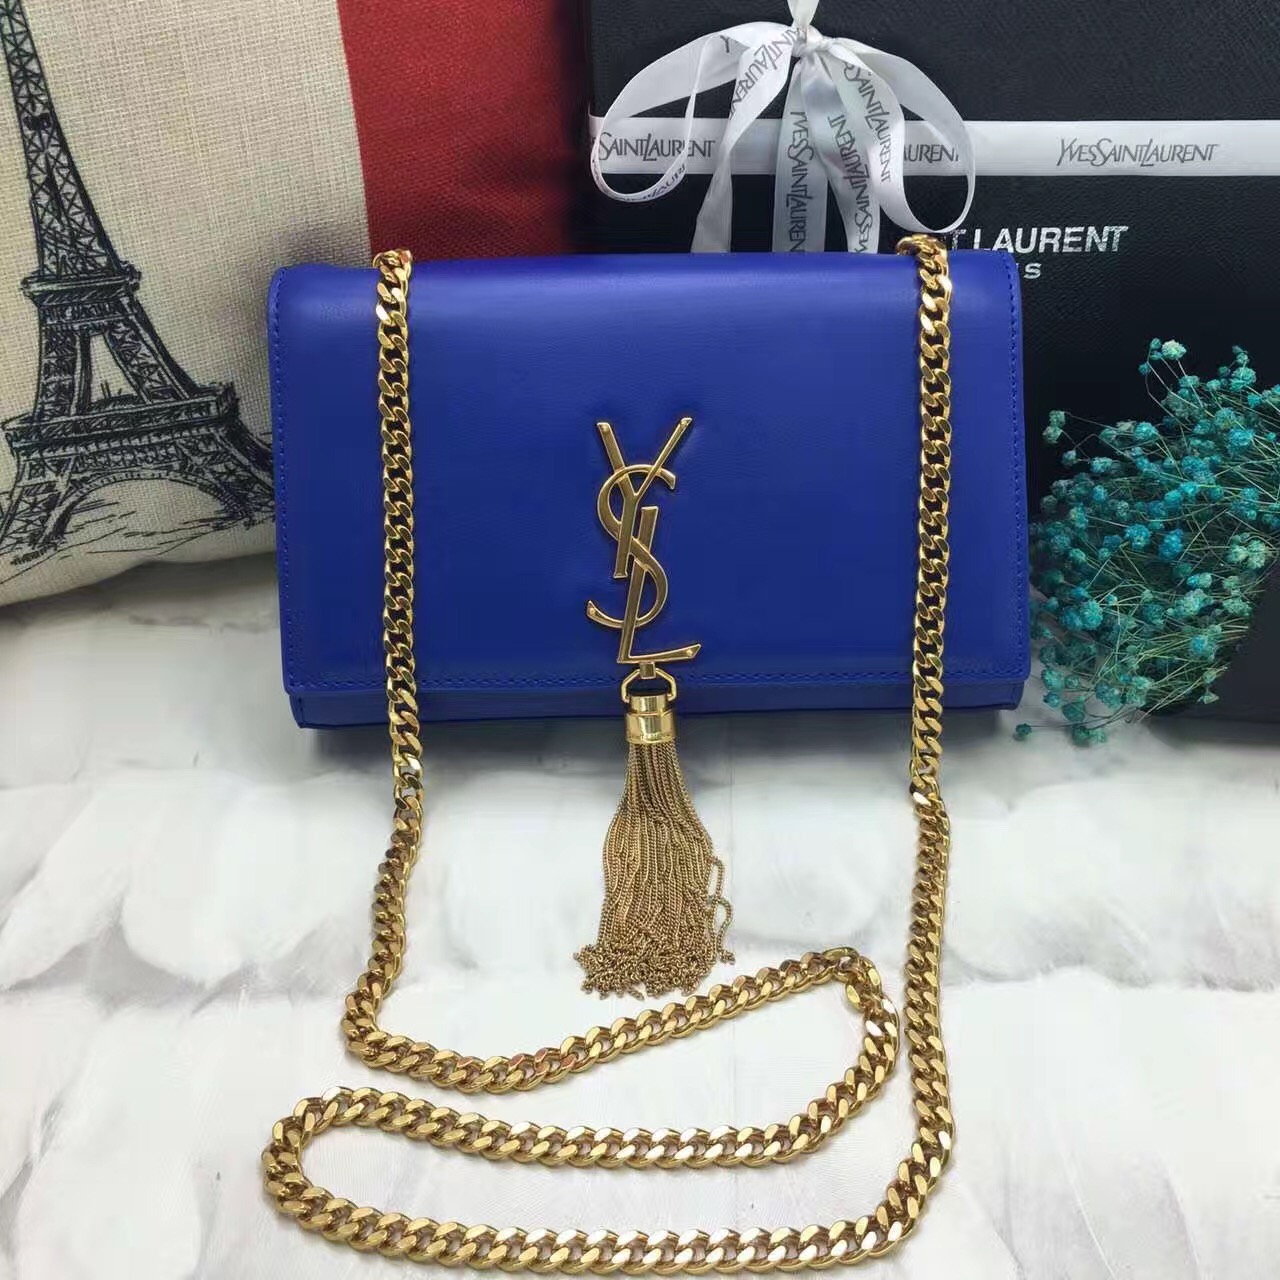 YSL Tassel Chain Bag 22cm Smooth Leather Blue Gold